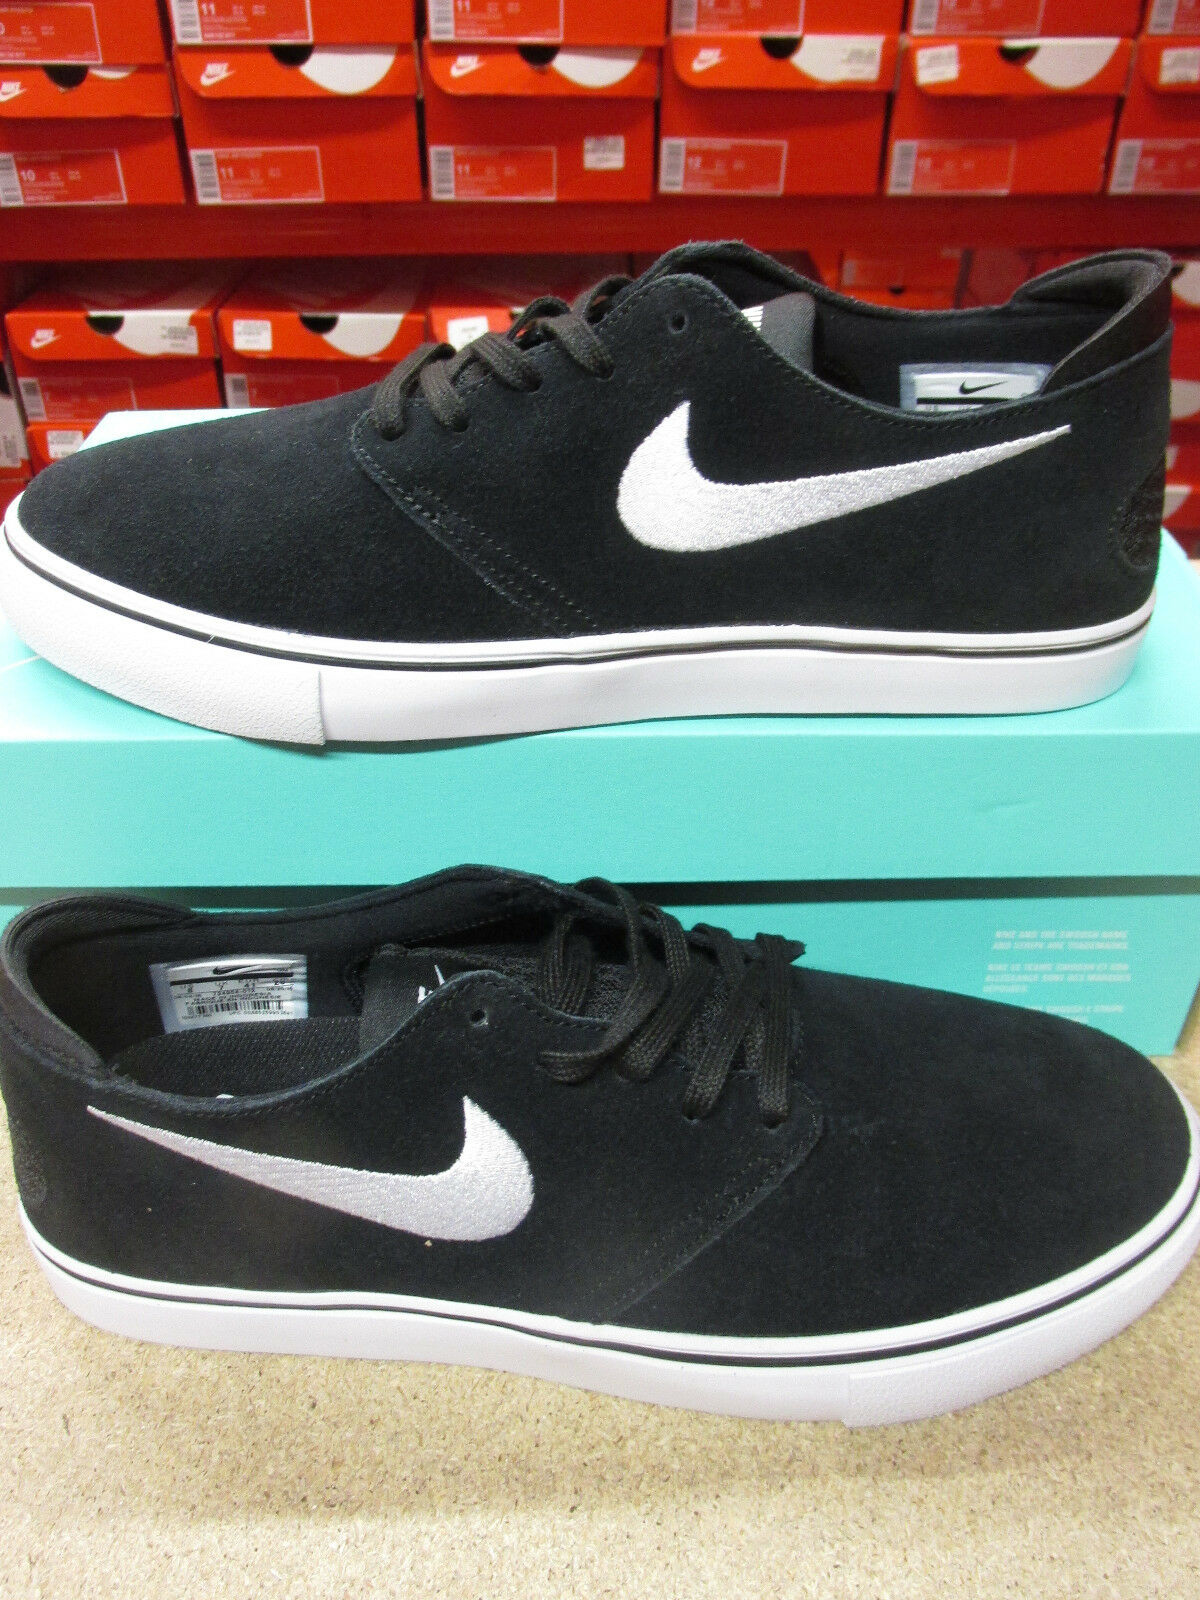 best website ac490 2adfd nike zoom onehsot SB mens trainers 724954 724954 724954 012 sneakers shoes  f62717